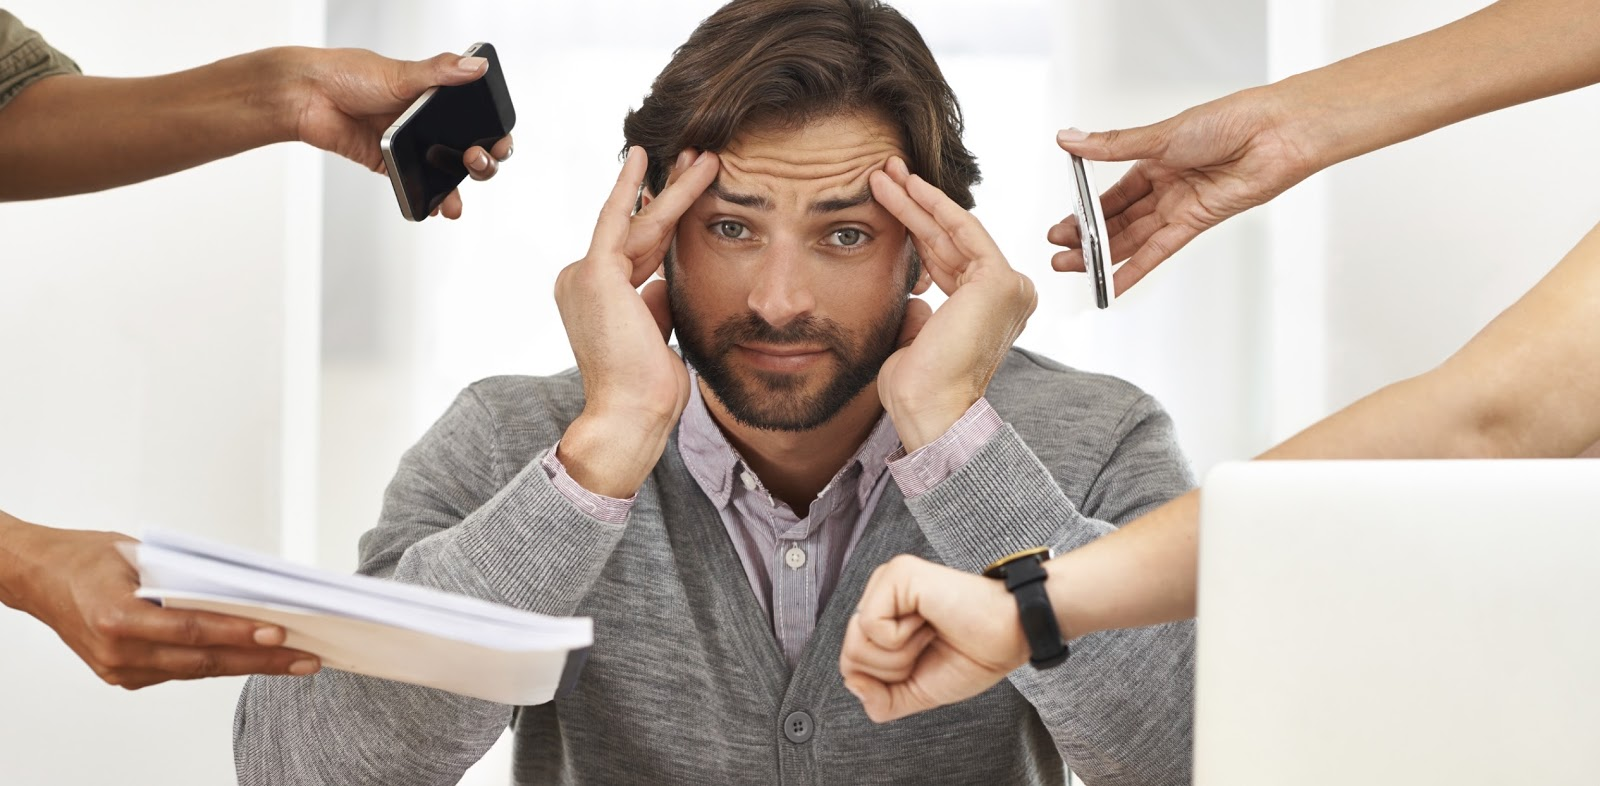 Business Executive Wind Down Article Image